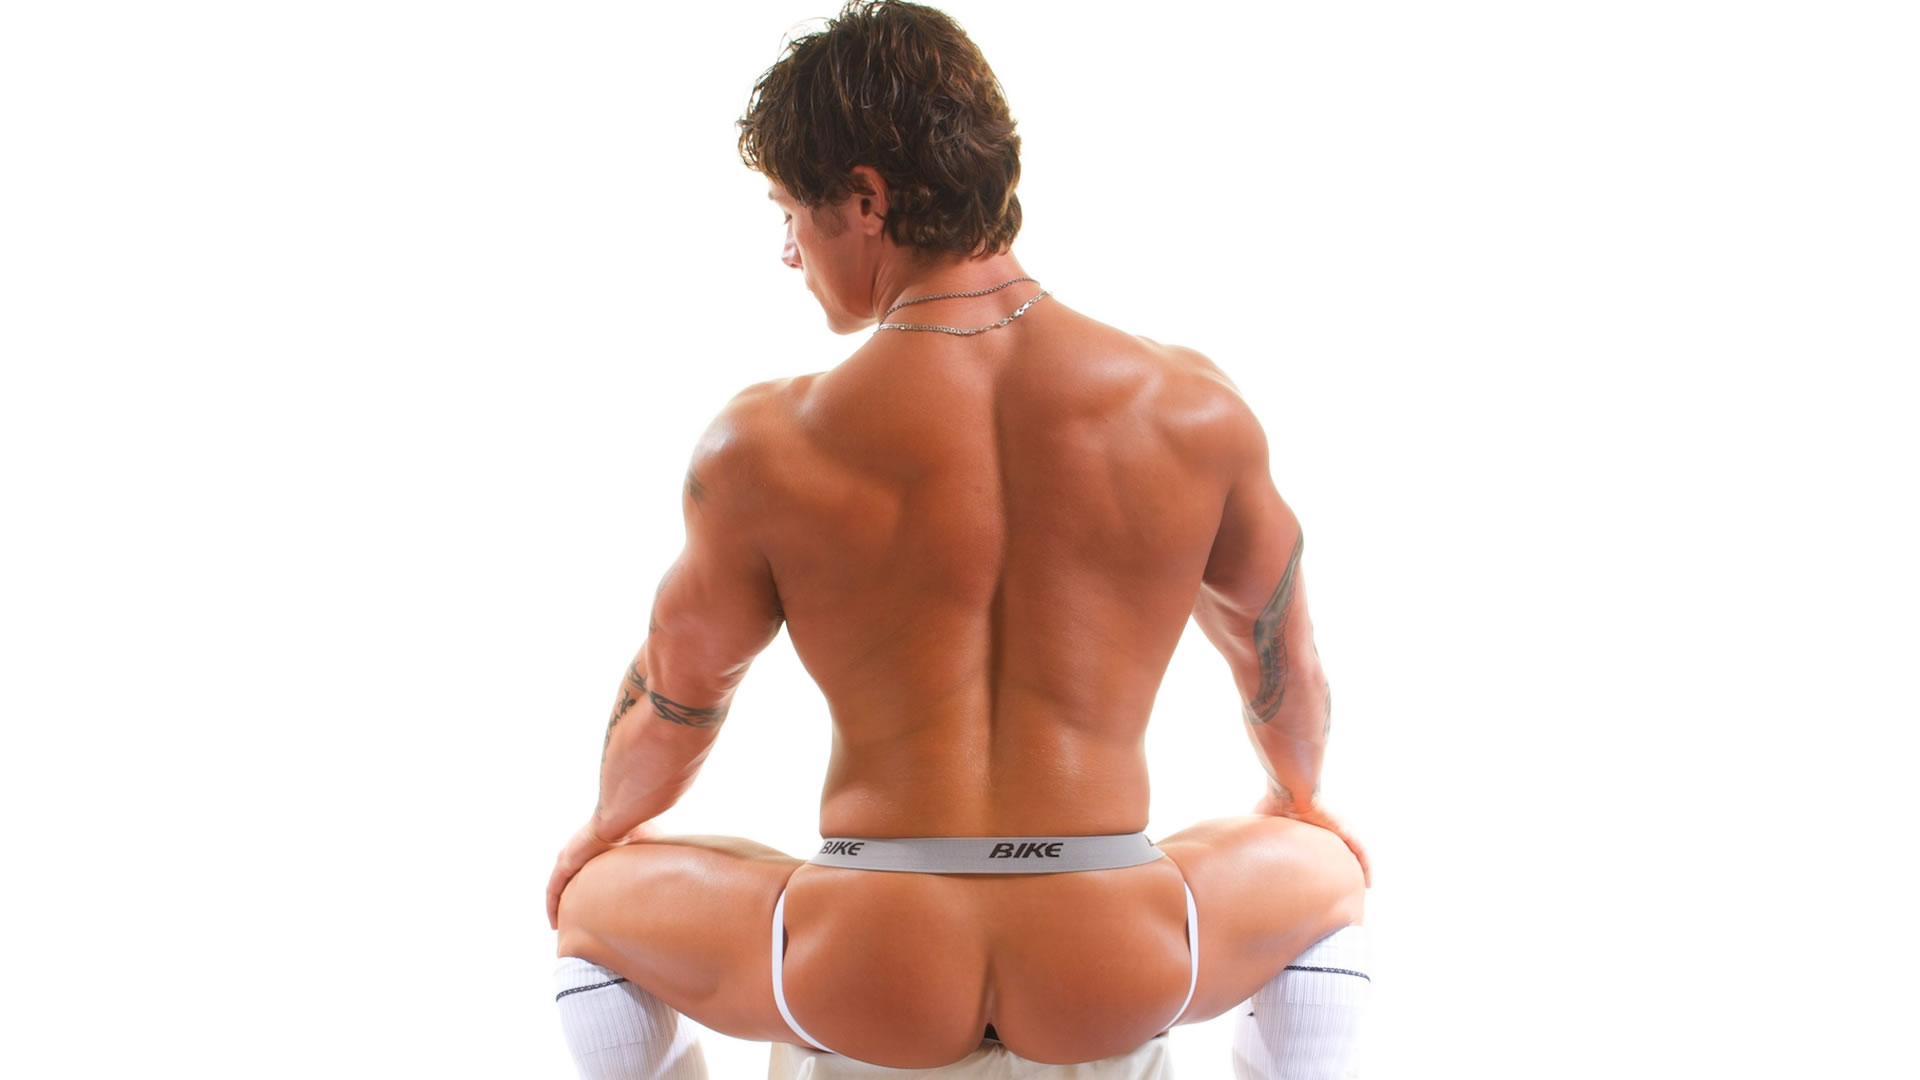 How to get a bigger buttocks fast naturally